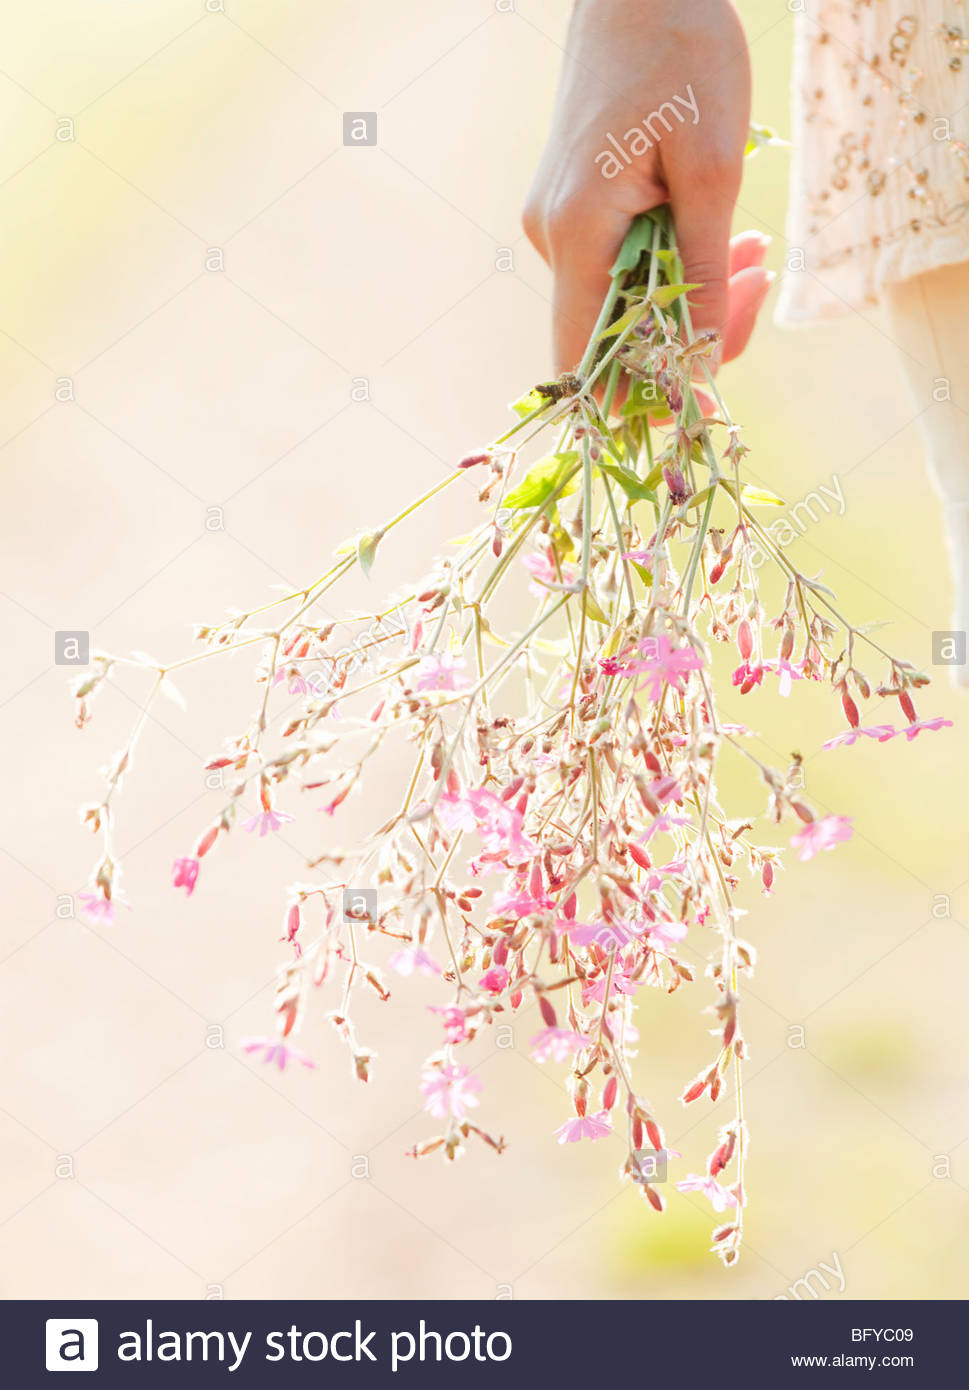 Woman holding bunch of flowers - Stock Image